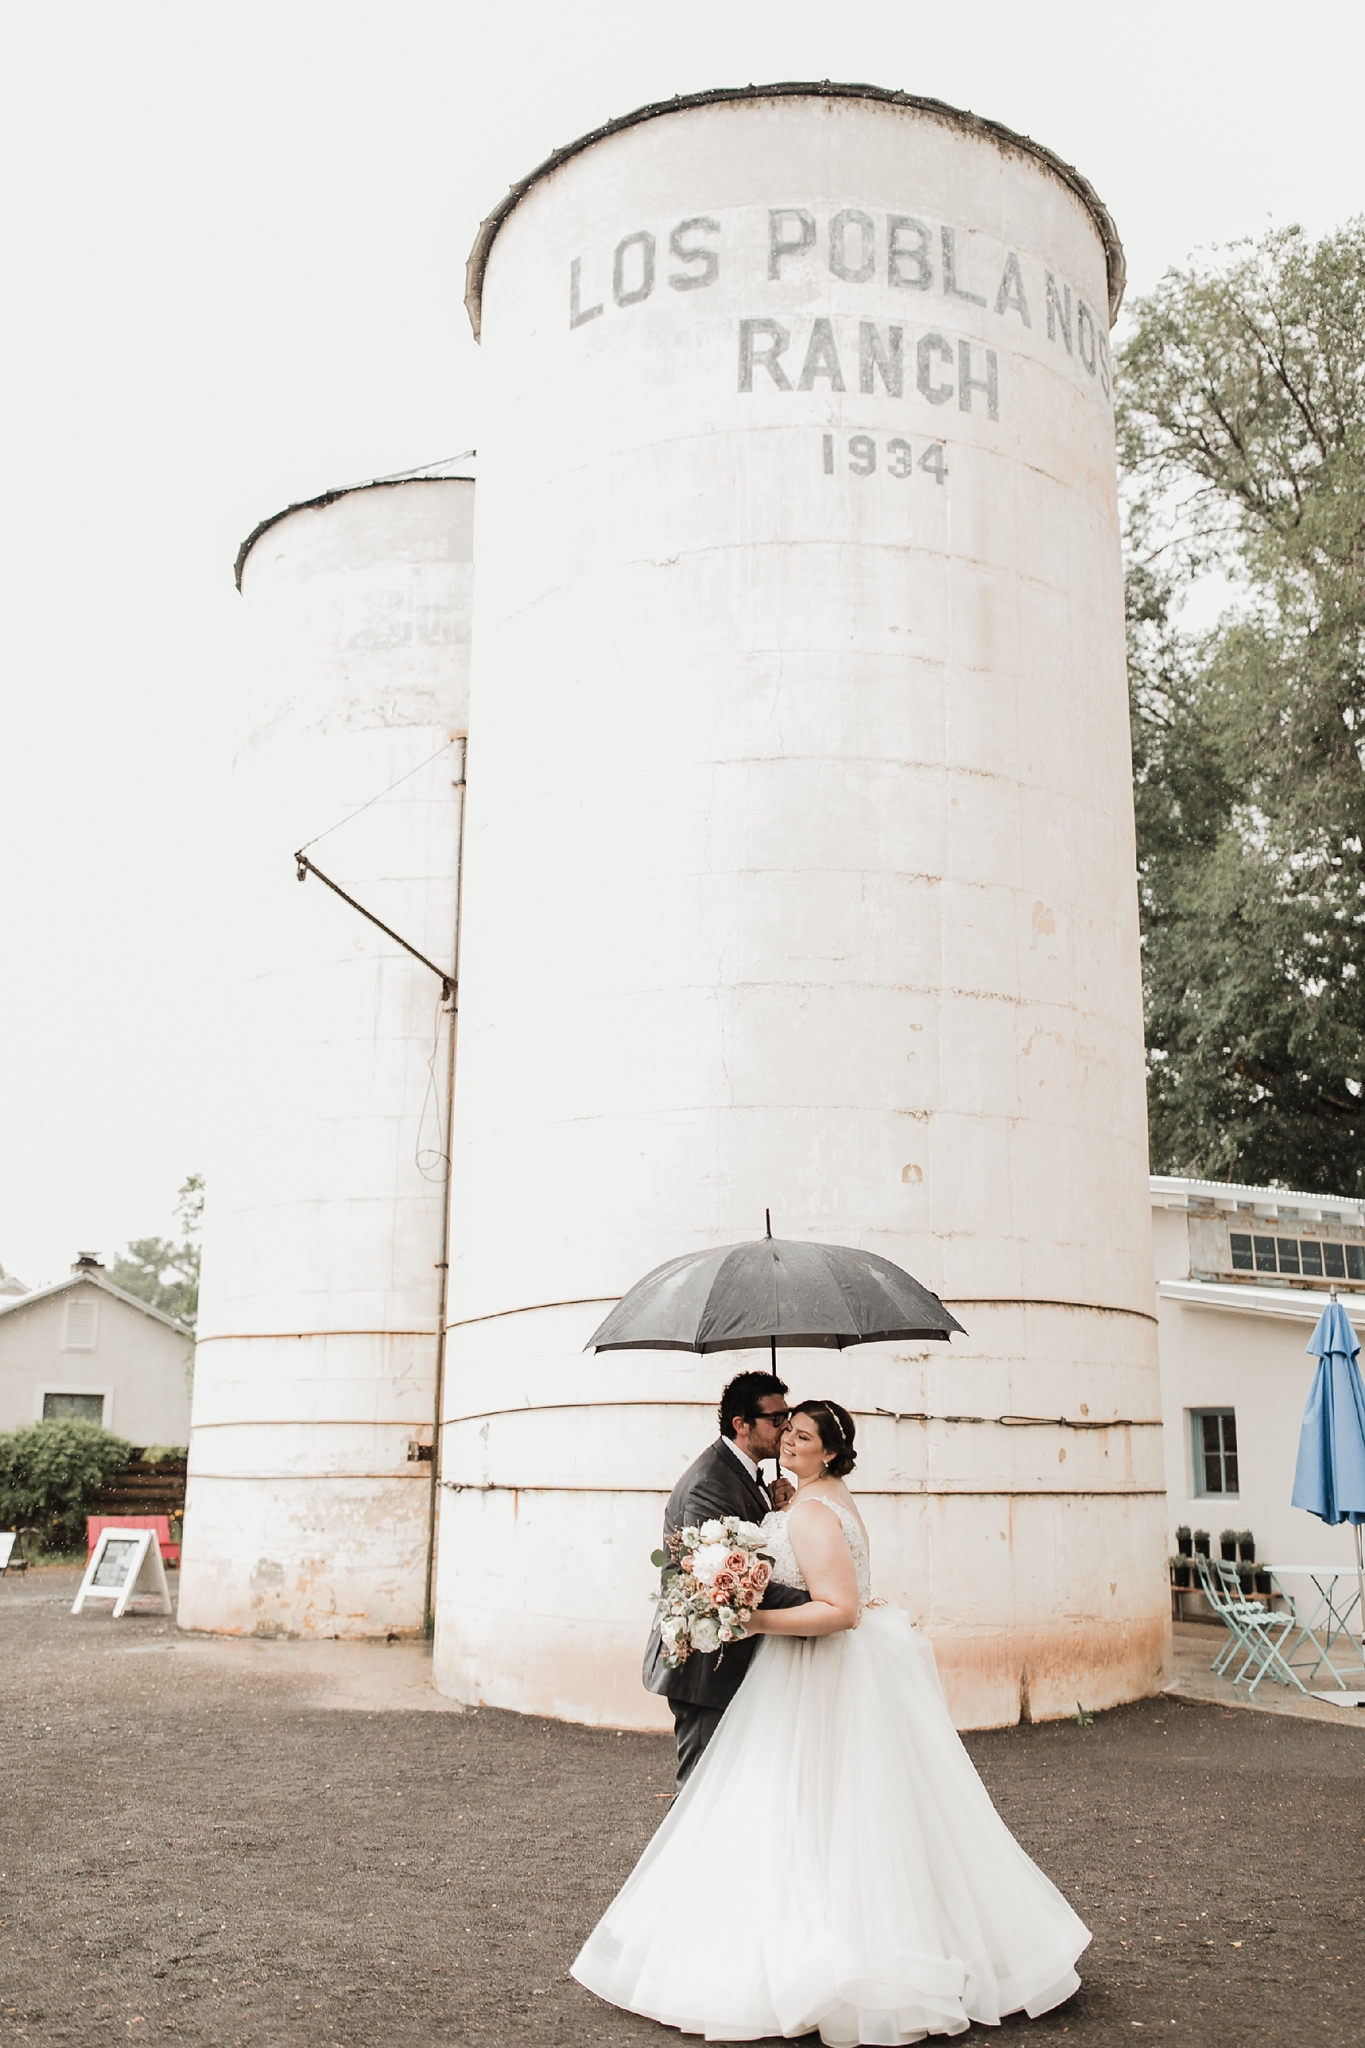 Alicia+lucia+photography+-+albuquerque+wedding+photographer+-+santa+fe+wedding+photography+-+new+mexico+wedding+photographer+-+new+mexico+wedding+-+summer+wedding+-+los+poblanos+wedding+-+albuquerque+wedding_0070.jpg